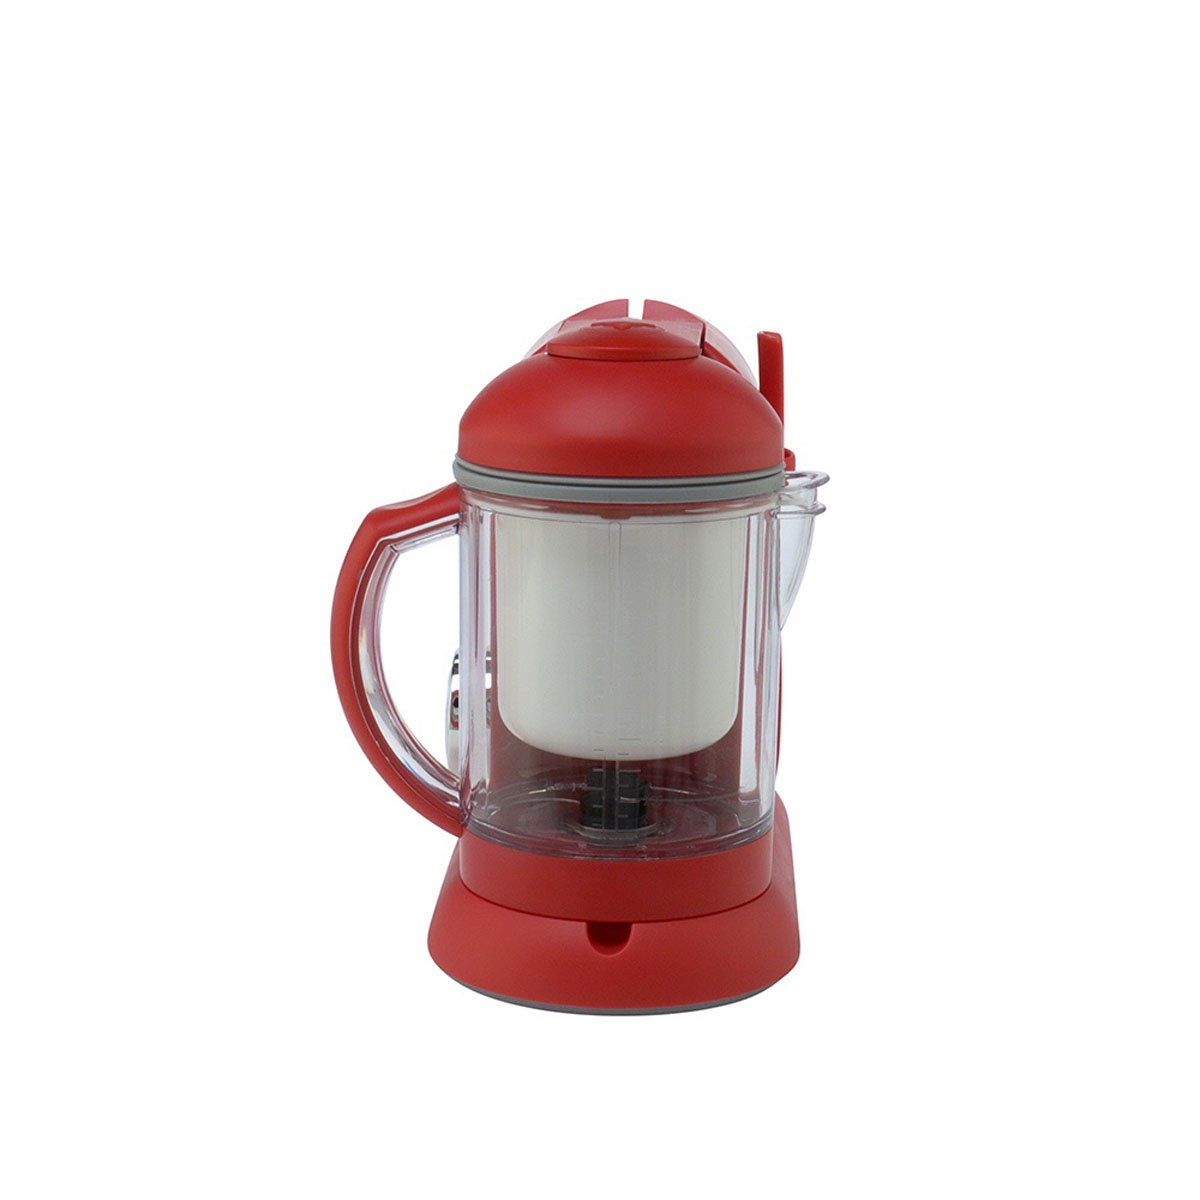 Beaba Babycook 4-in-1 Steamer and Food Processor Red